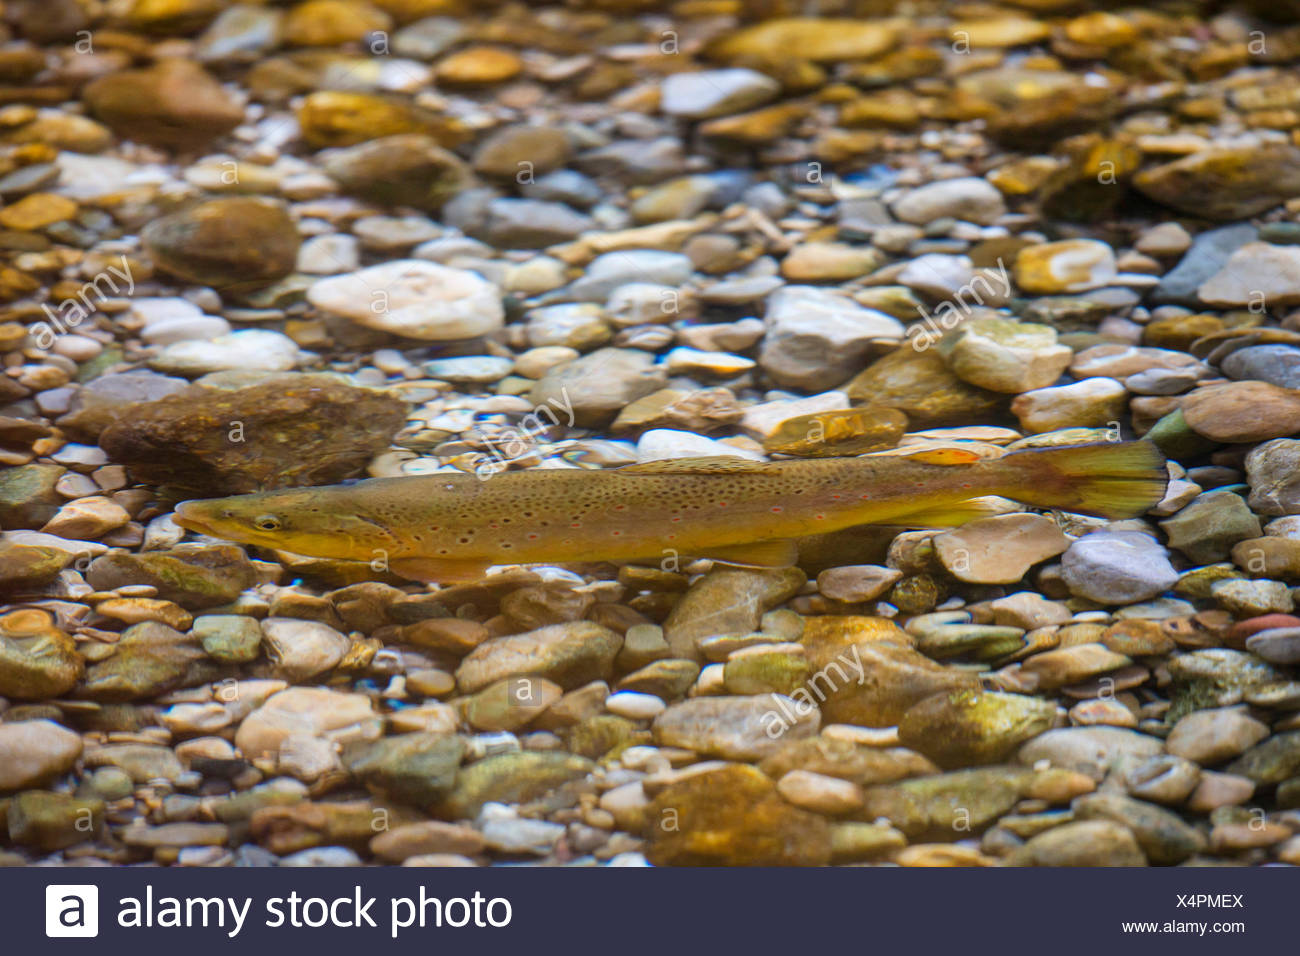 brown trout, river trout, brook trout (Salmo trutta fario), male at the fish migration, Germany, Bavaria - Stock Image